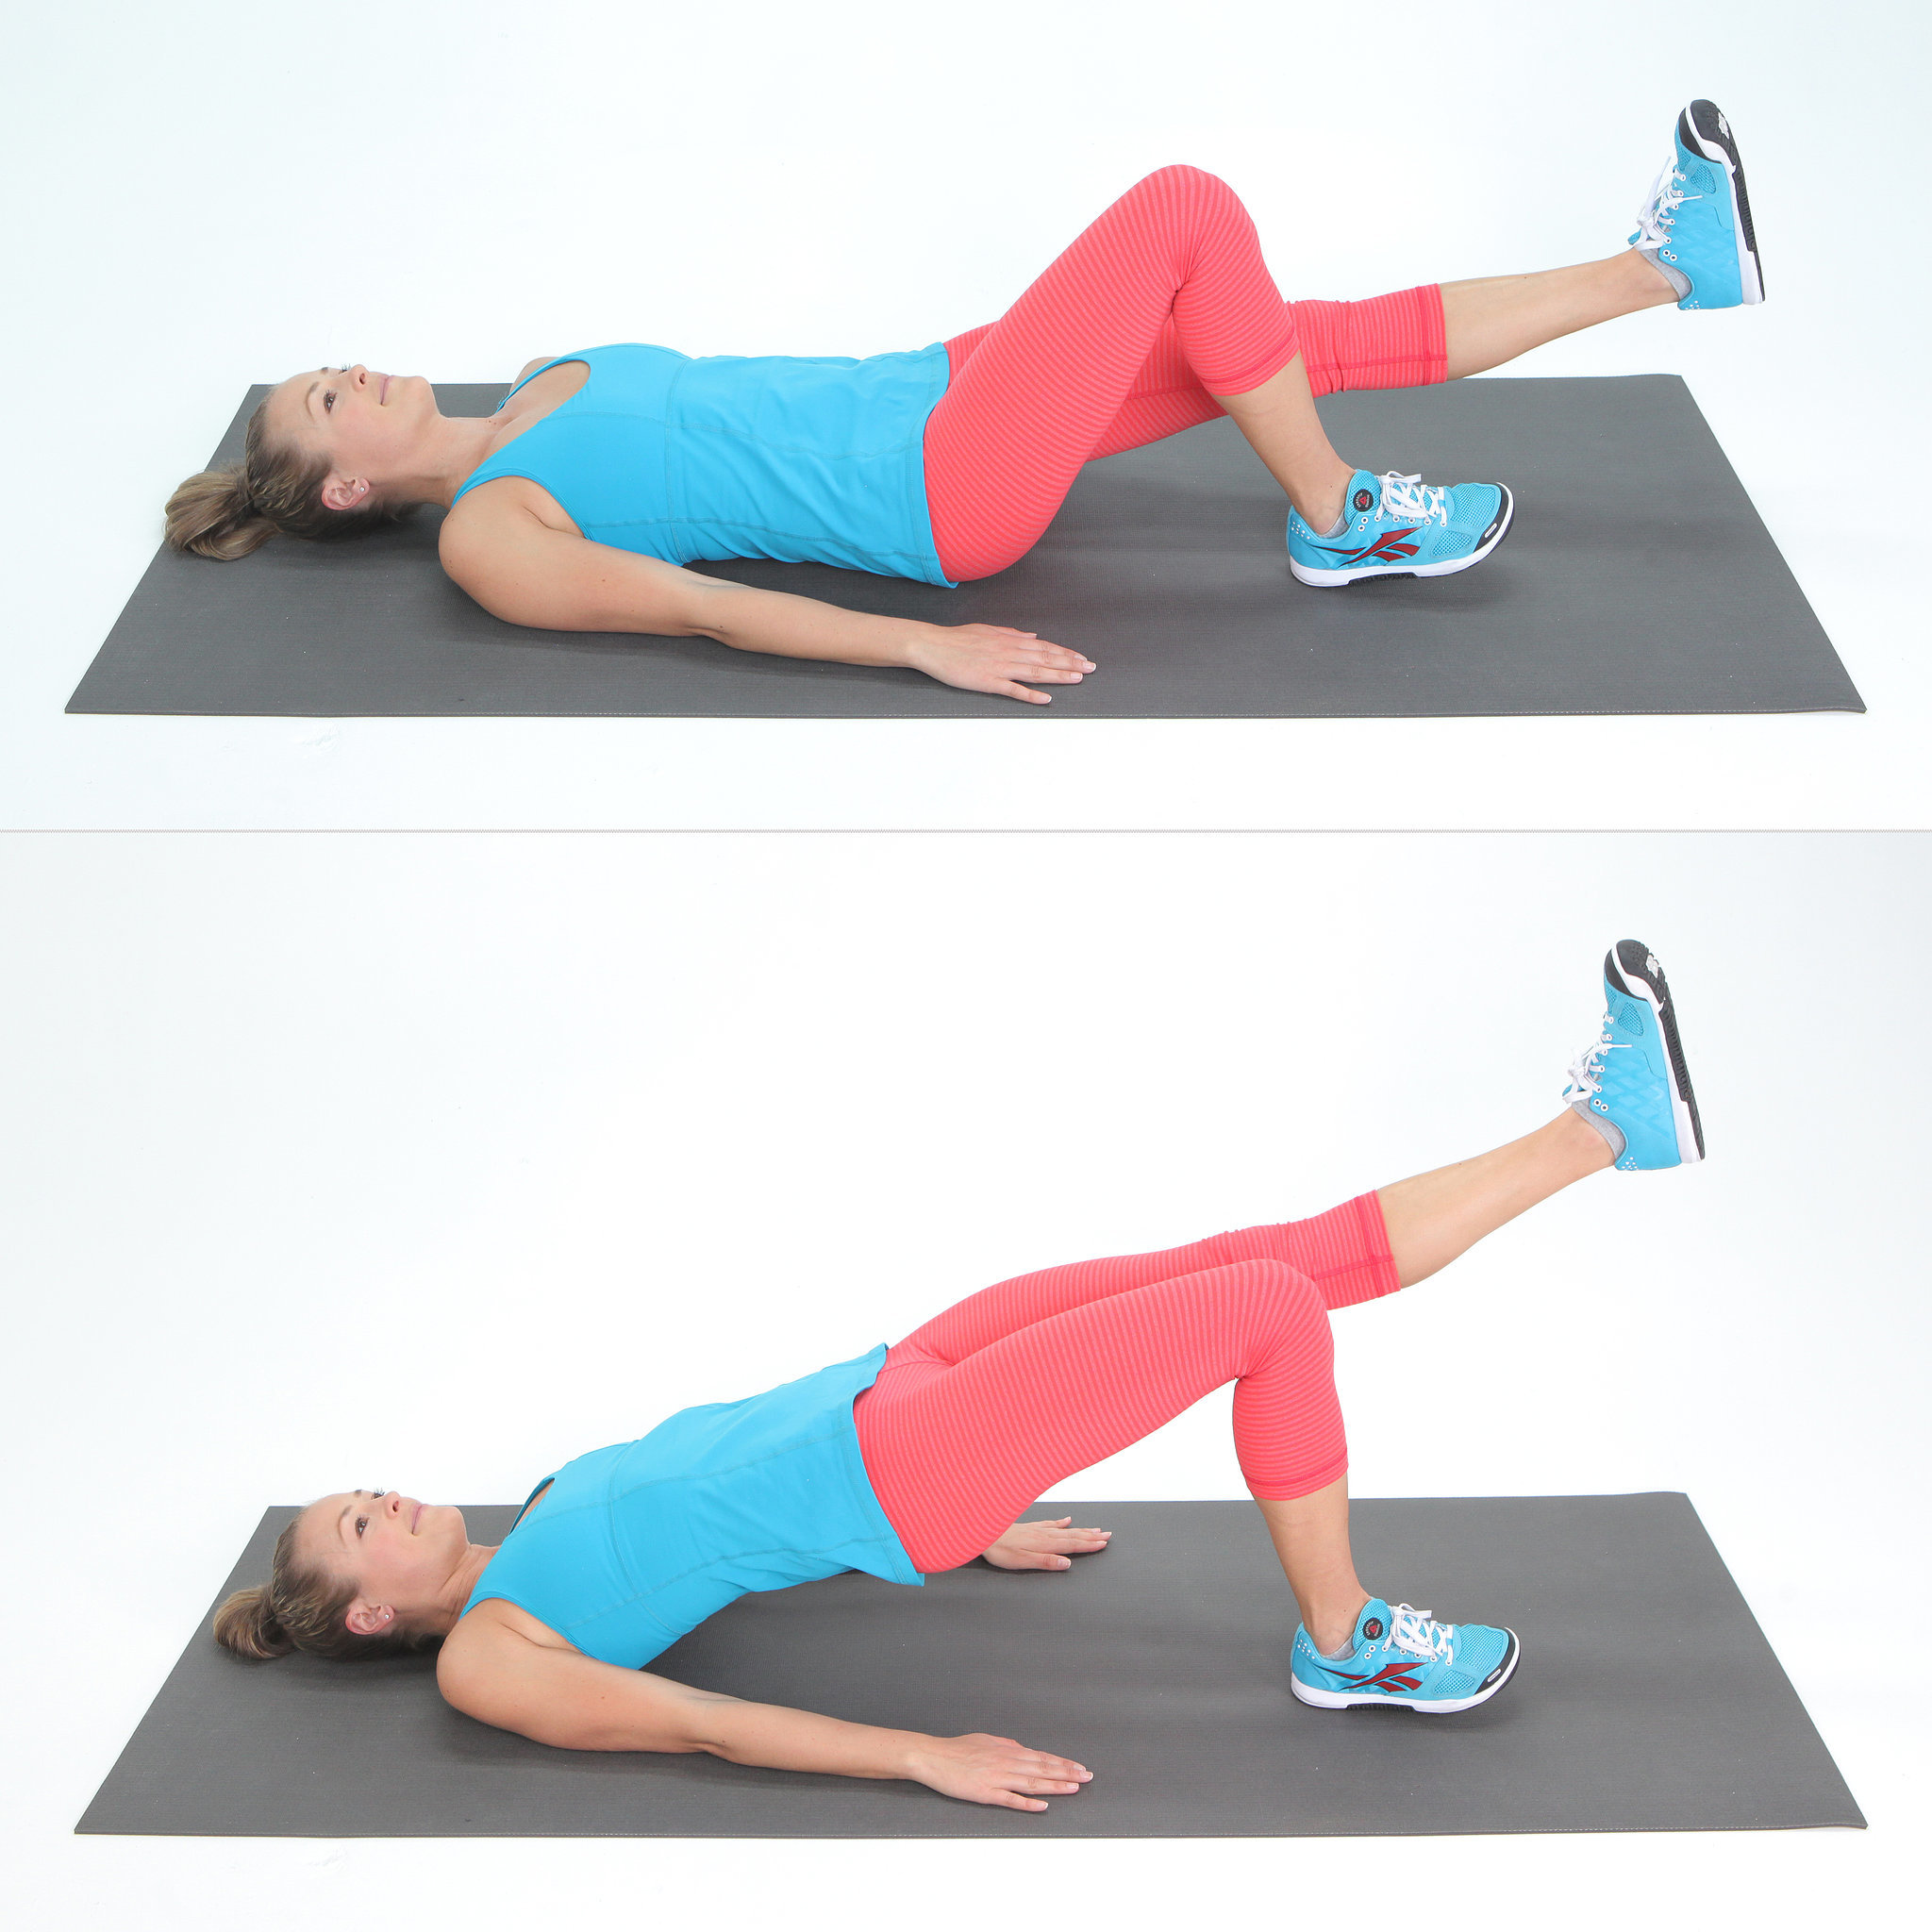 Exercise 5: Single-Leg Bridge Kicks